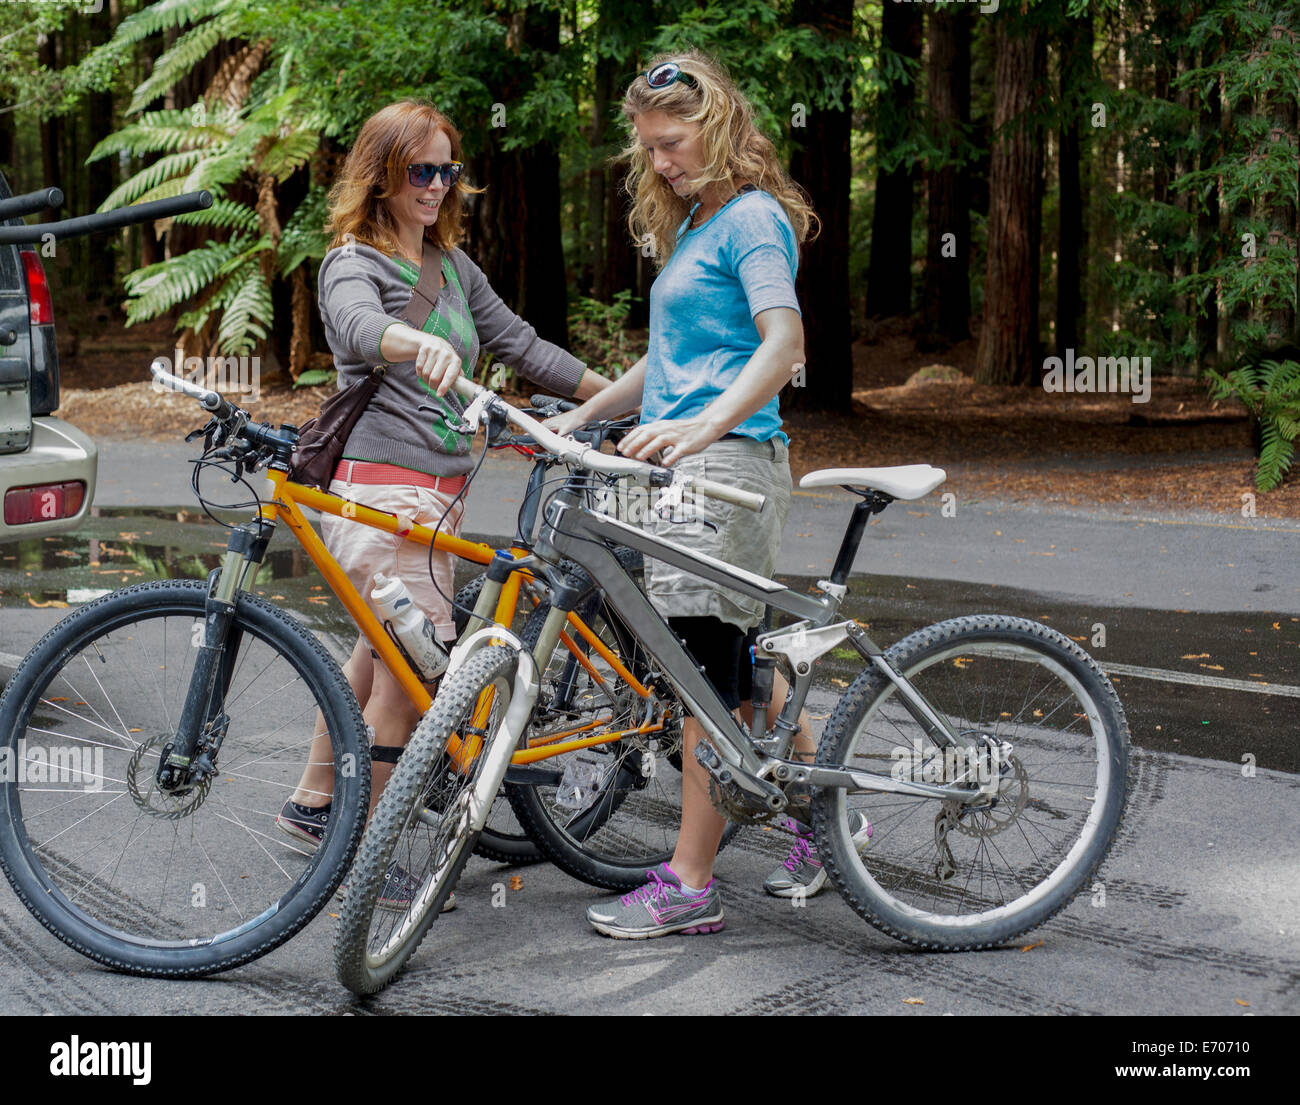 Two women mountain bikers preparing to cycle in forest - Stock Image